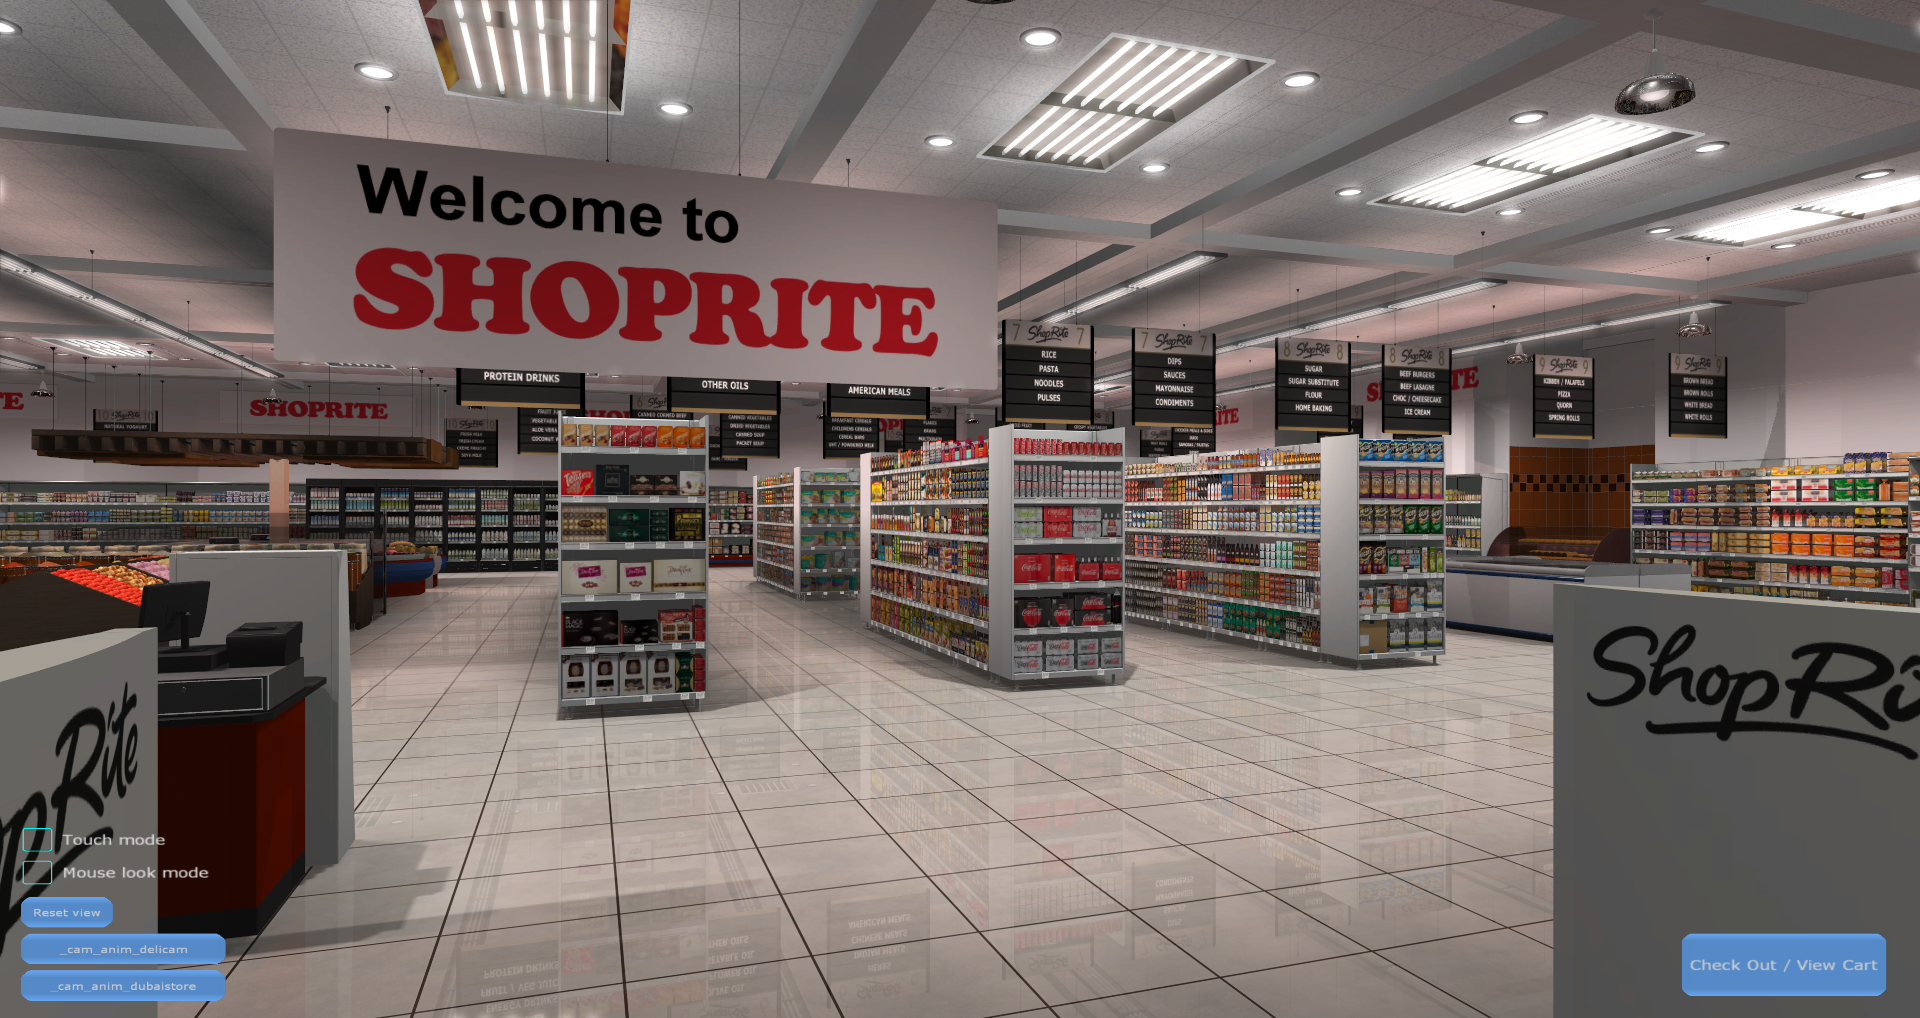 3D Shopping Virtual Store Screenshot from Carrefour VR Supermarket 1